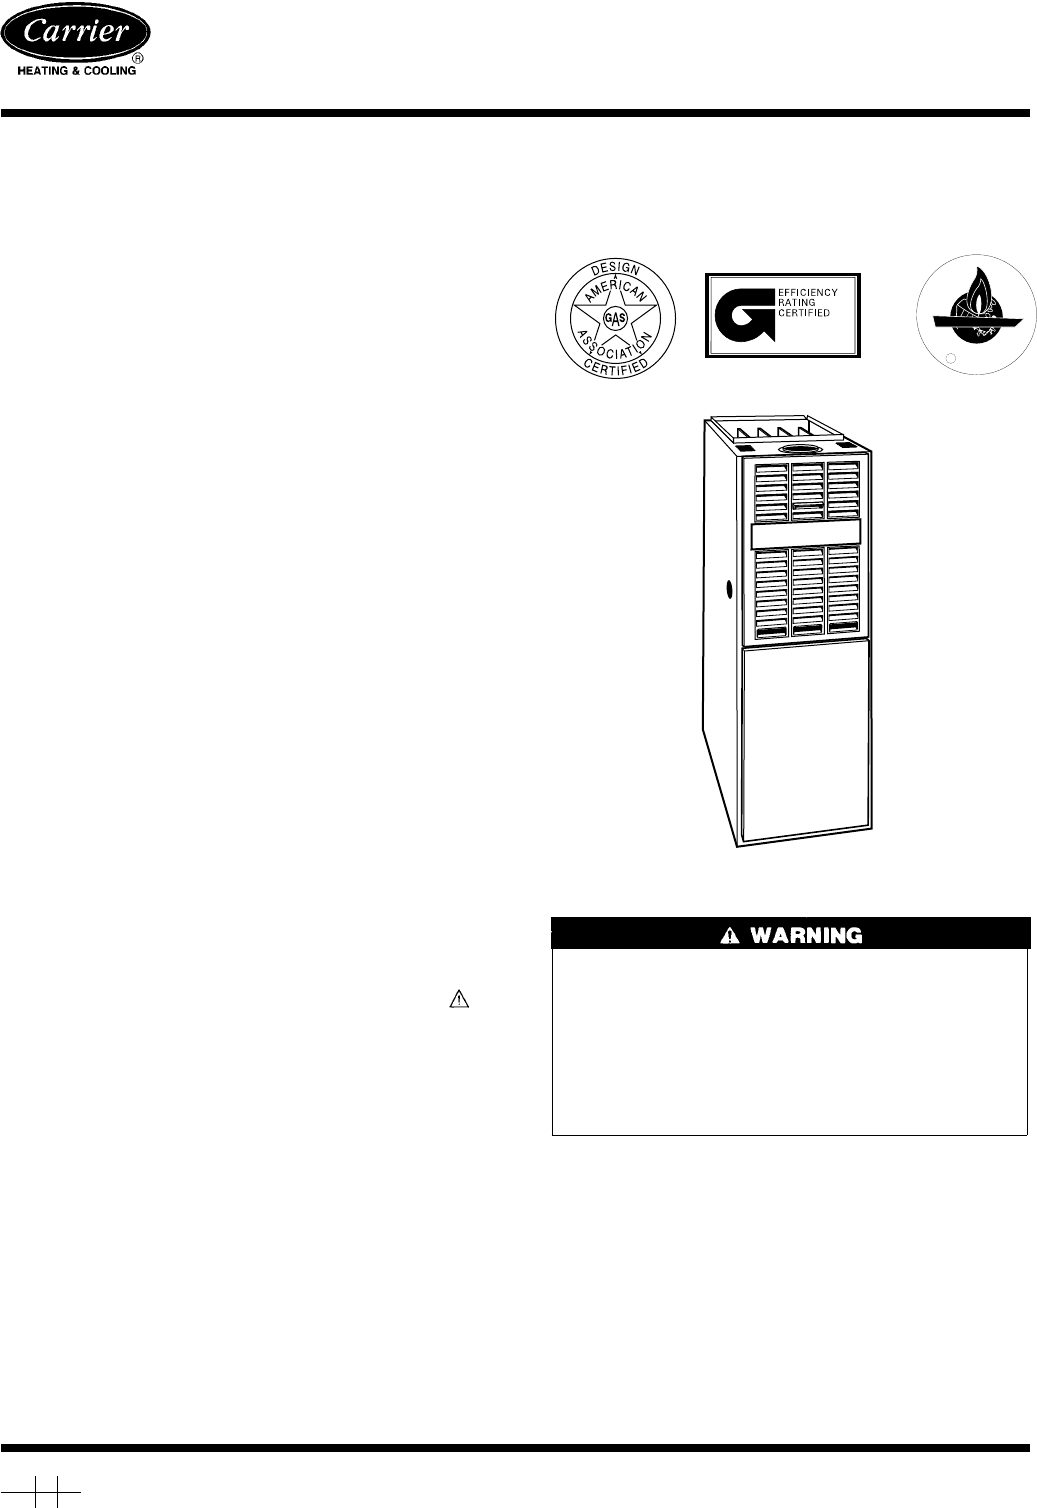 Honeywell Rth2300 Rth221 Wiring Diagram Trusted Diagrams Rth7400d Images Gallery